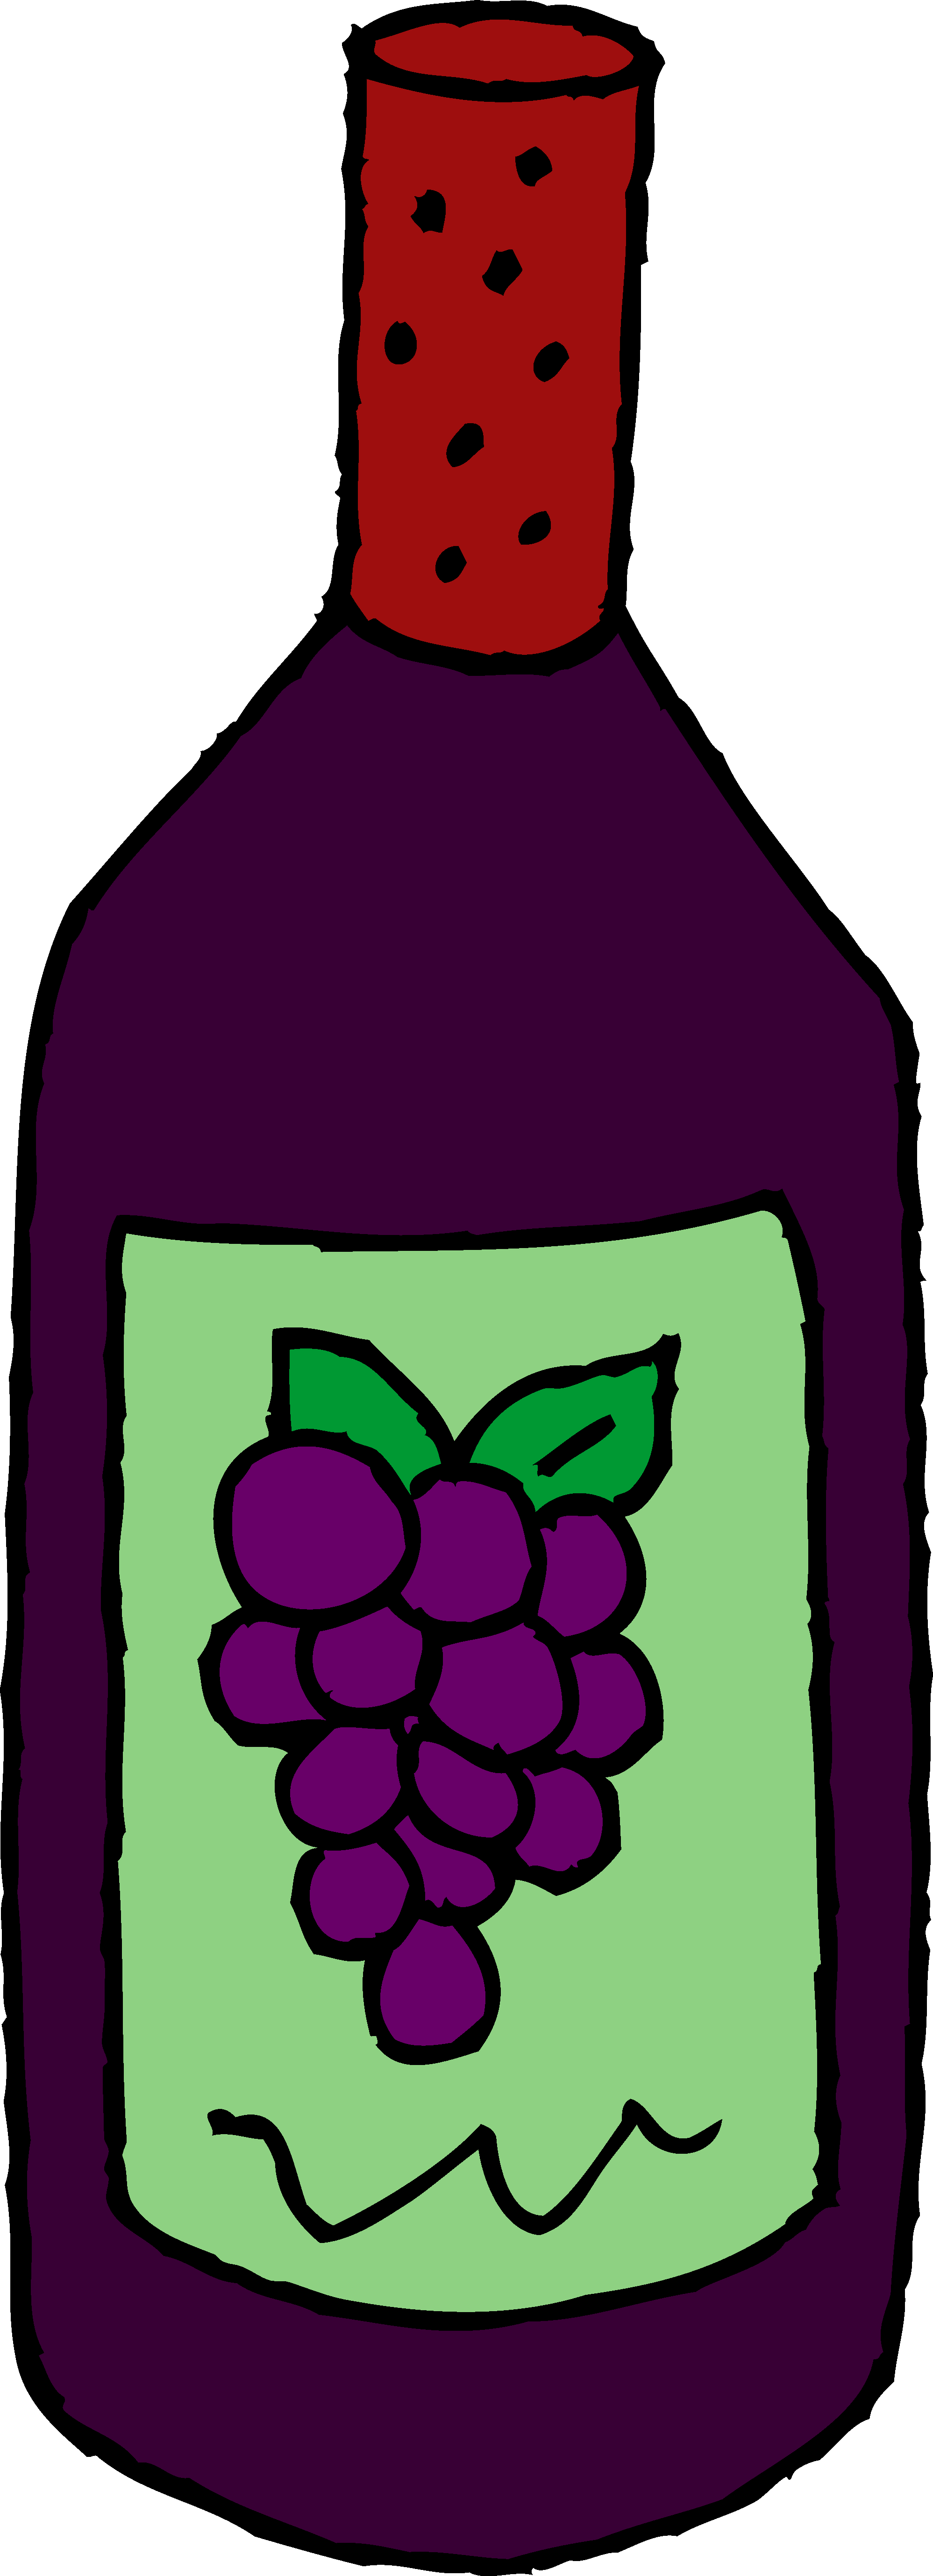 Bottle clipart #8, Download drawings